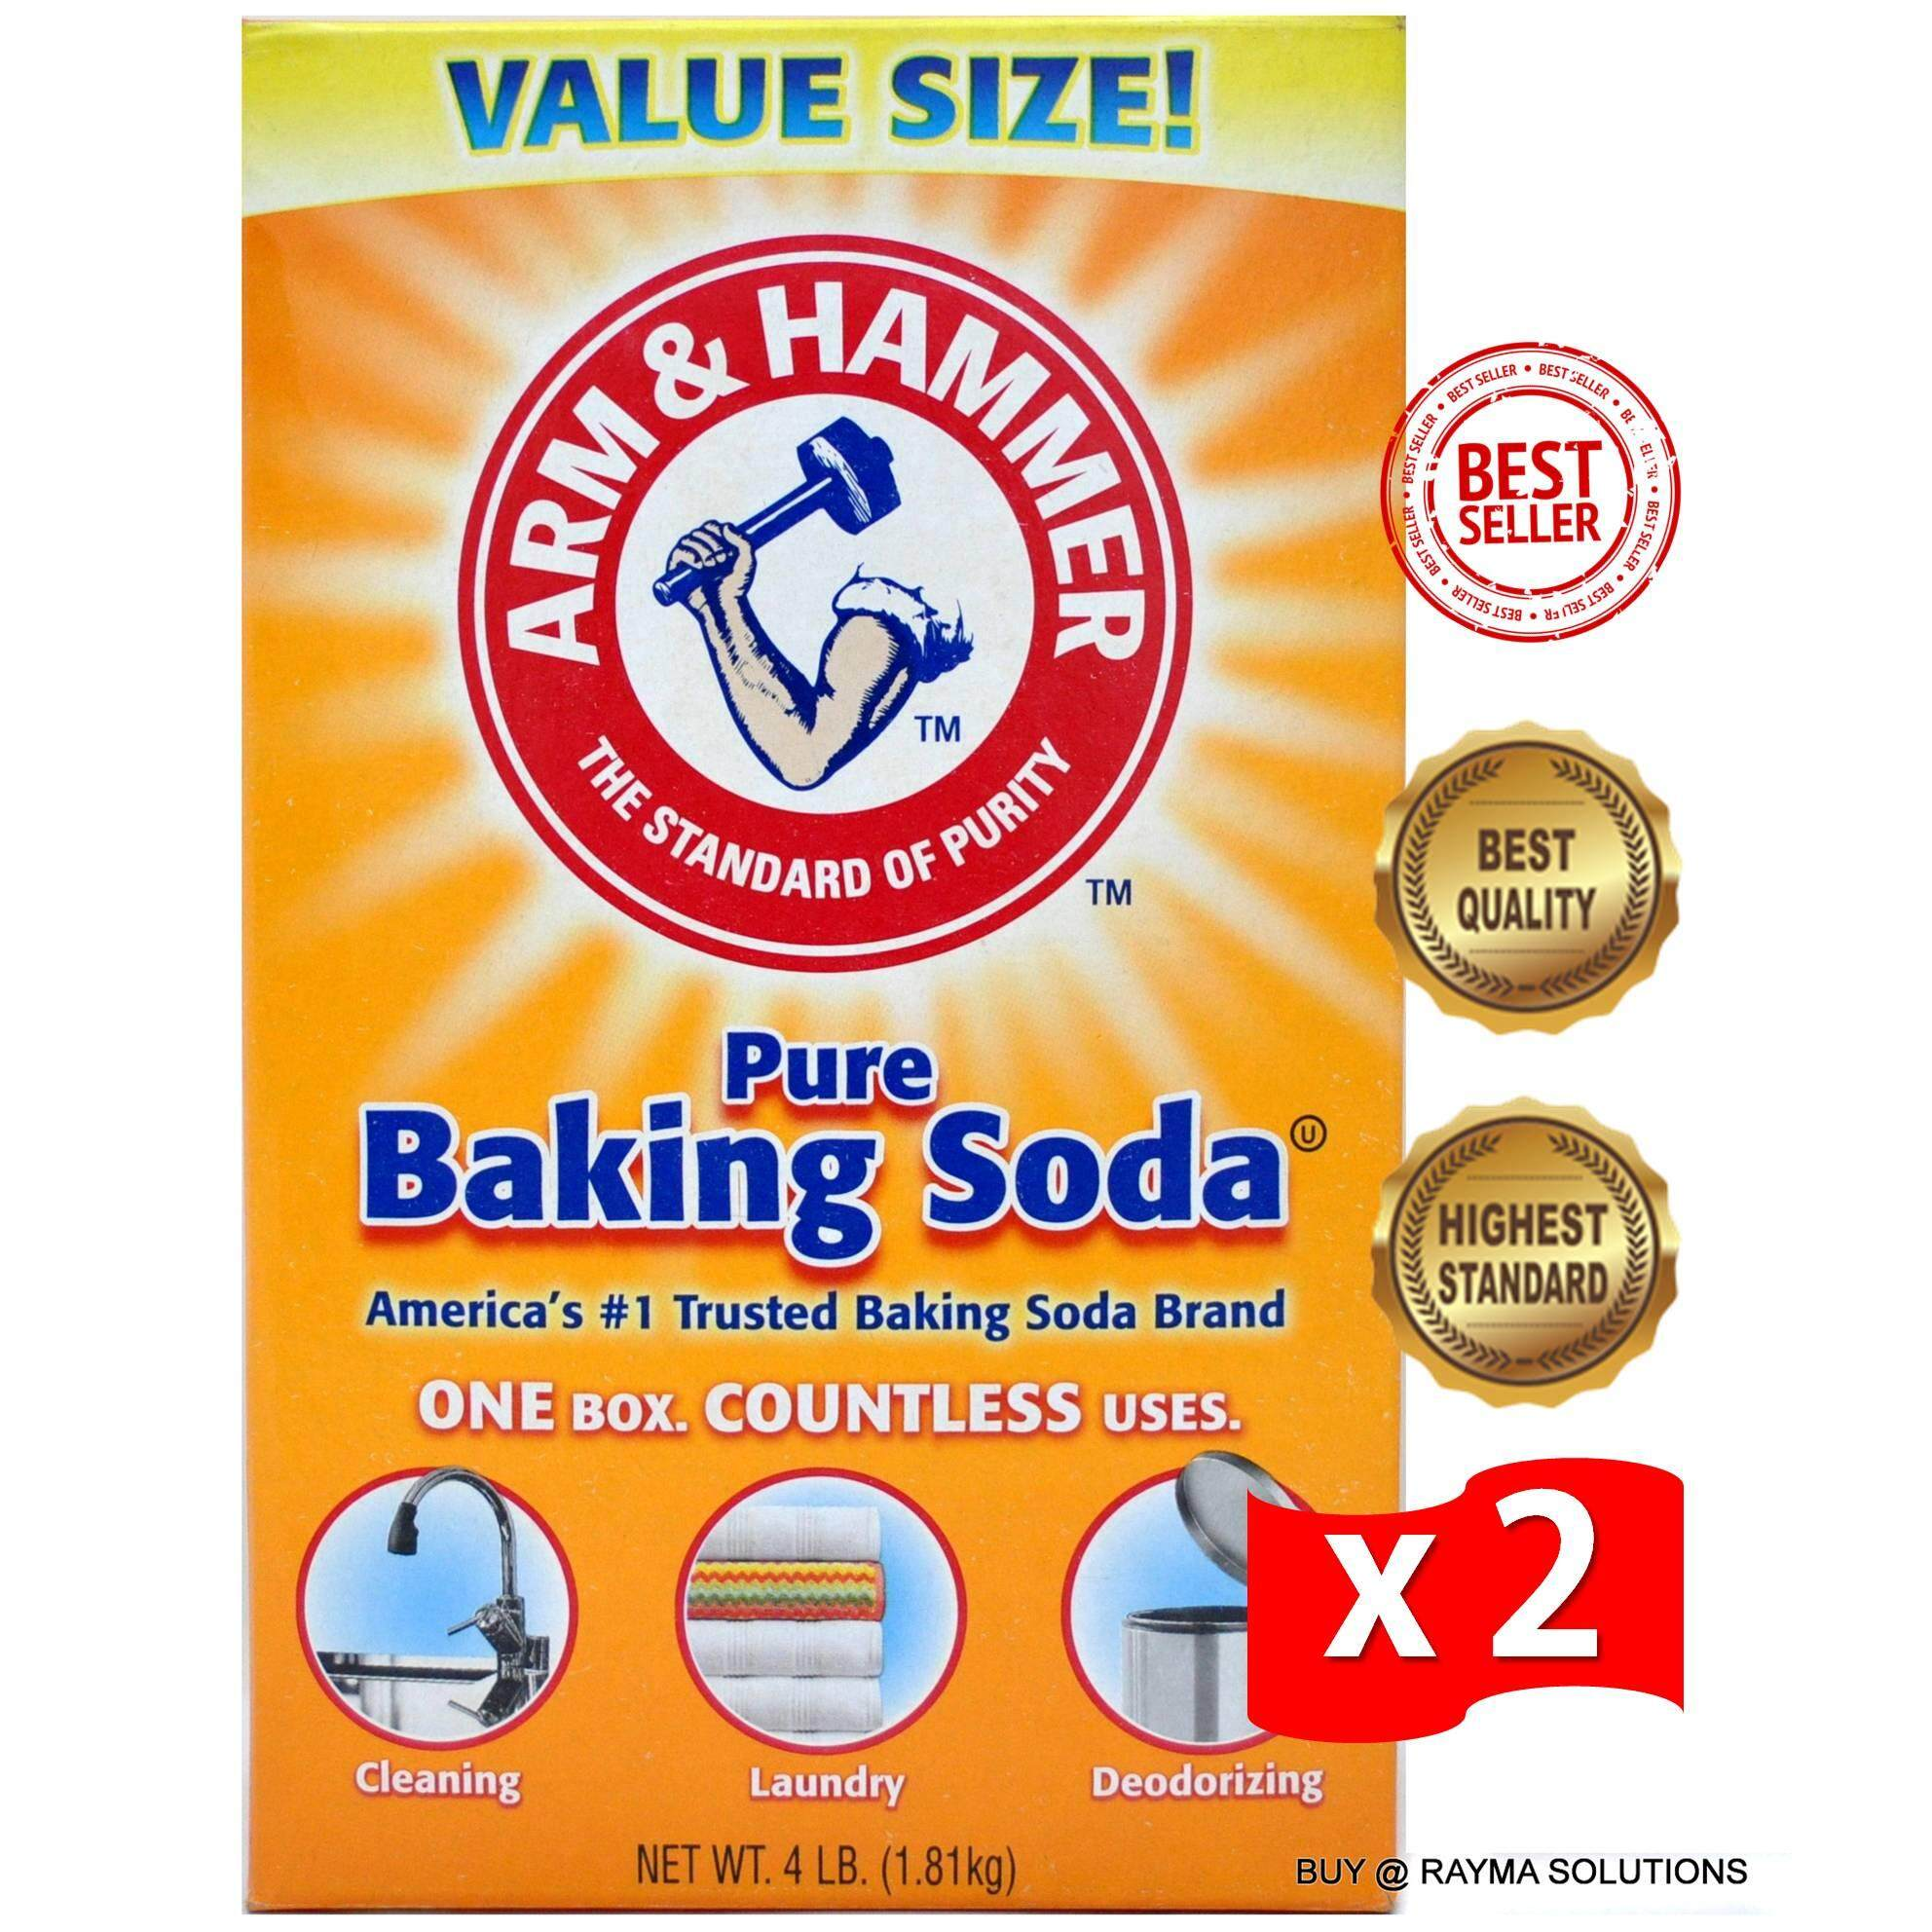 [$AVE More!] ARM & HAMMER Pure Baking Soda, Value Size, 1.81kg (Twin Pack)